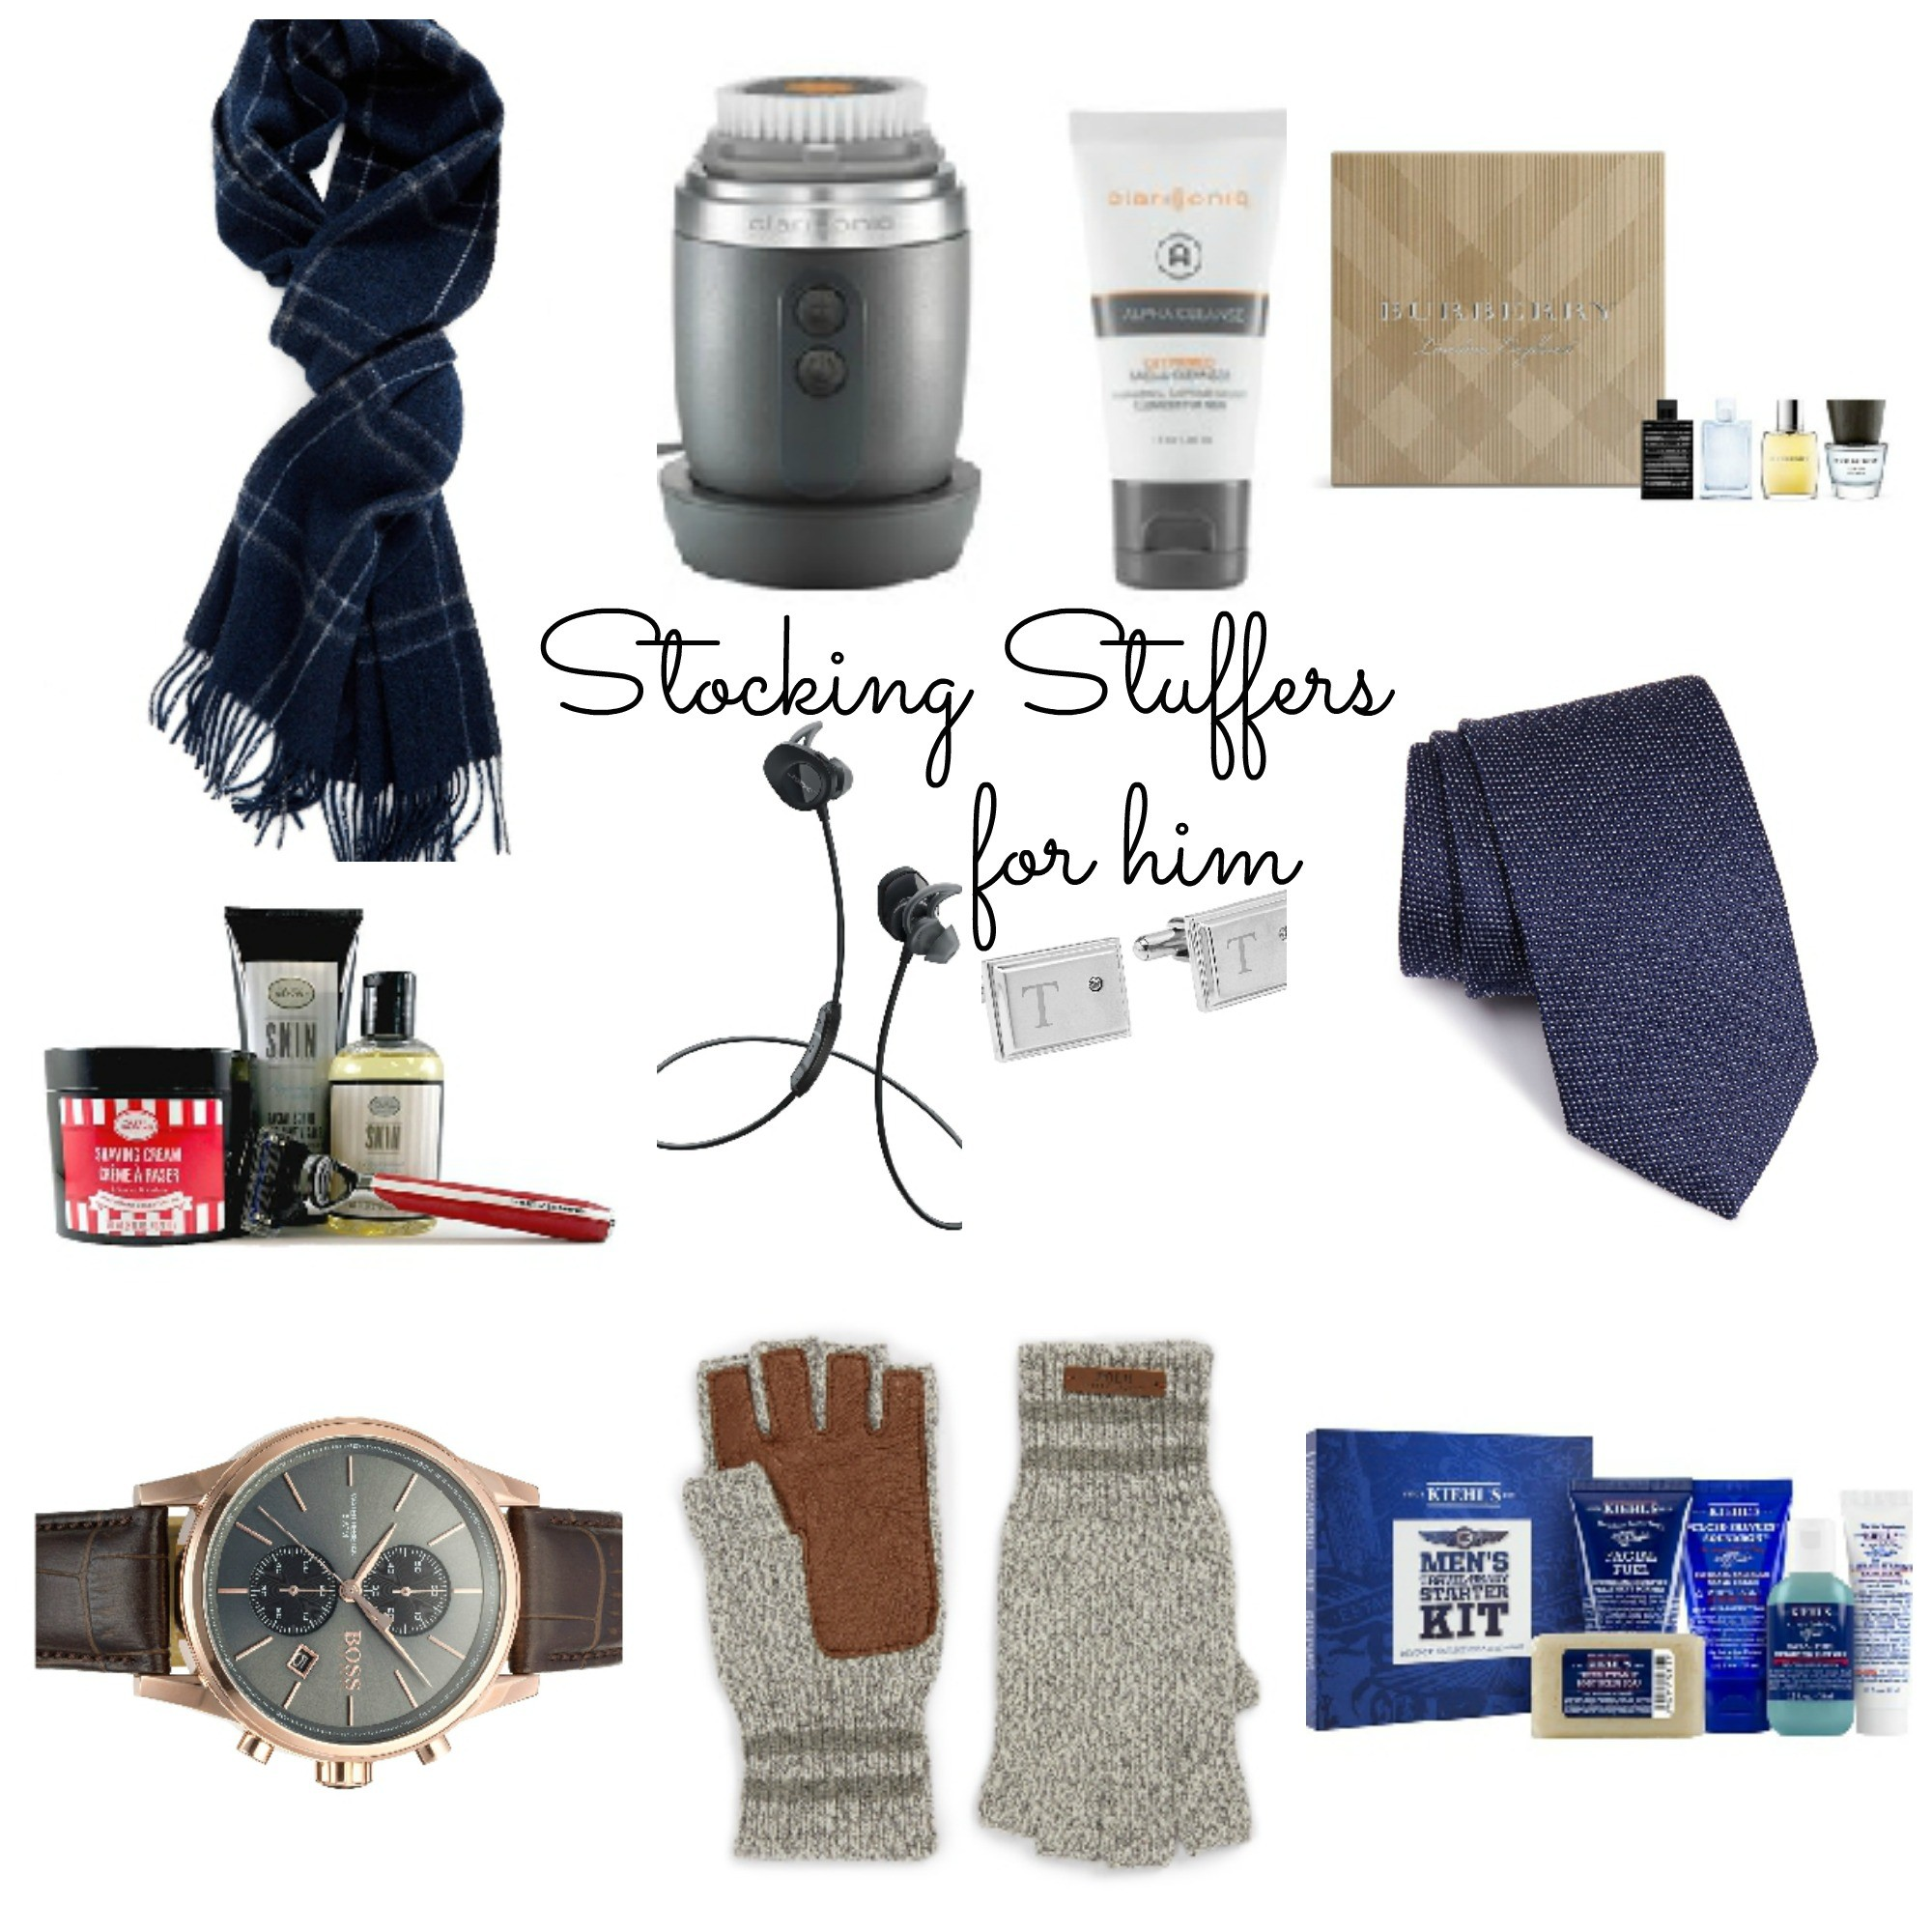 Stocking Stuffer Gift Guide for Women